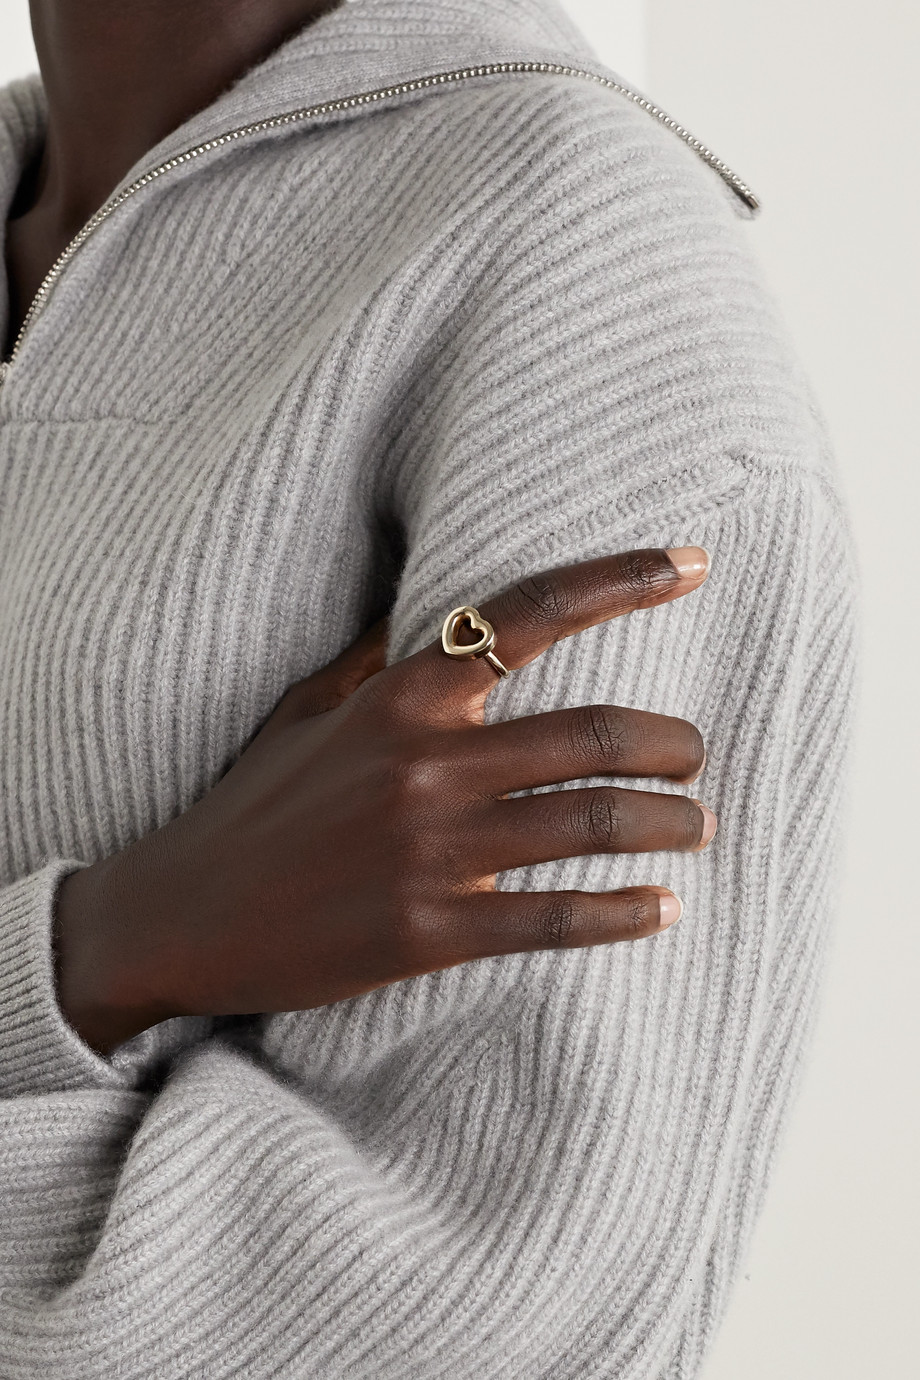 Laura Lombardi Cuore gold-tone ring